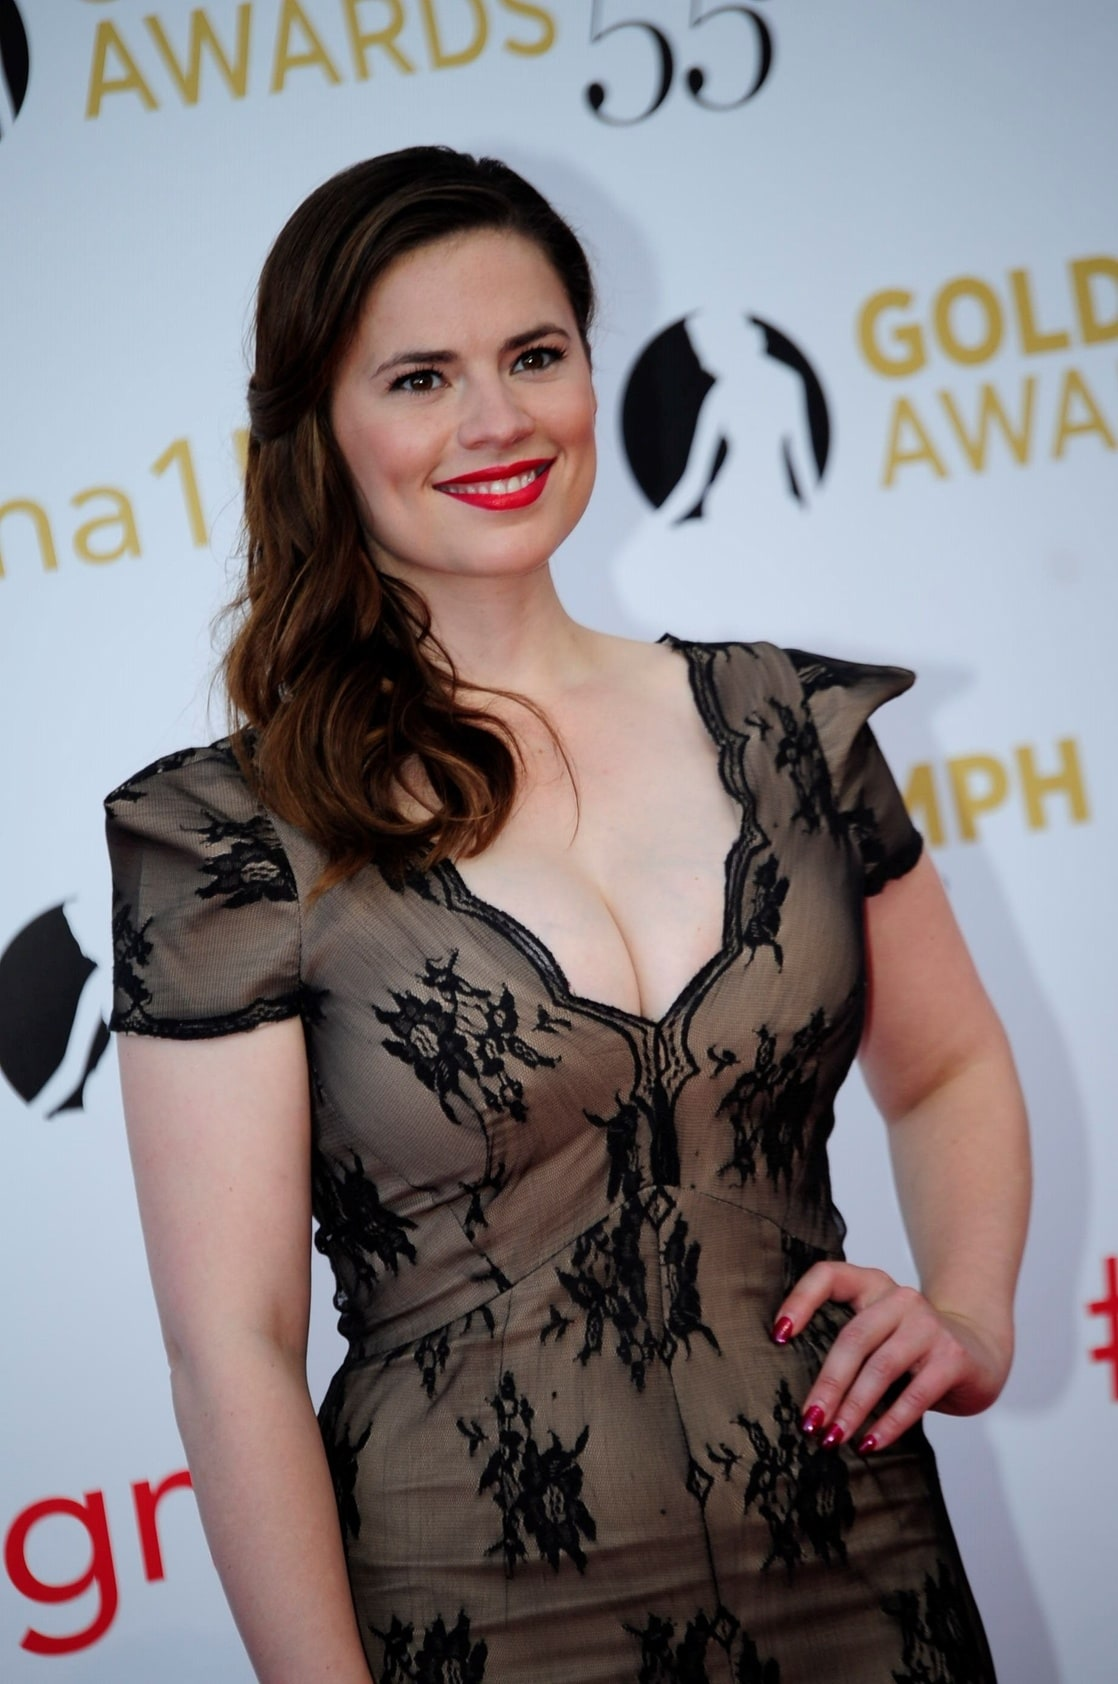 hayley atwell make uphayley atwell doctor who, hayley atwell twitter, hayley atwell captain america, hayley atwell chris evans, hayley atwell fansite, hayley atwell fan, hayley atwell listal, hayley atwell 2017, hayley atwell кинопоиск, hayley atwell imdb, hayley atwell gallery, hayley atwell insta, hayley atwell png, hayley atwell lip sync battle, hayley atwell peggy carter, hayley atwell barefoot, hayley atwell tom hiddleston, hayley atwell make up, hayley atwell инстаграм, hayley atwell no bra